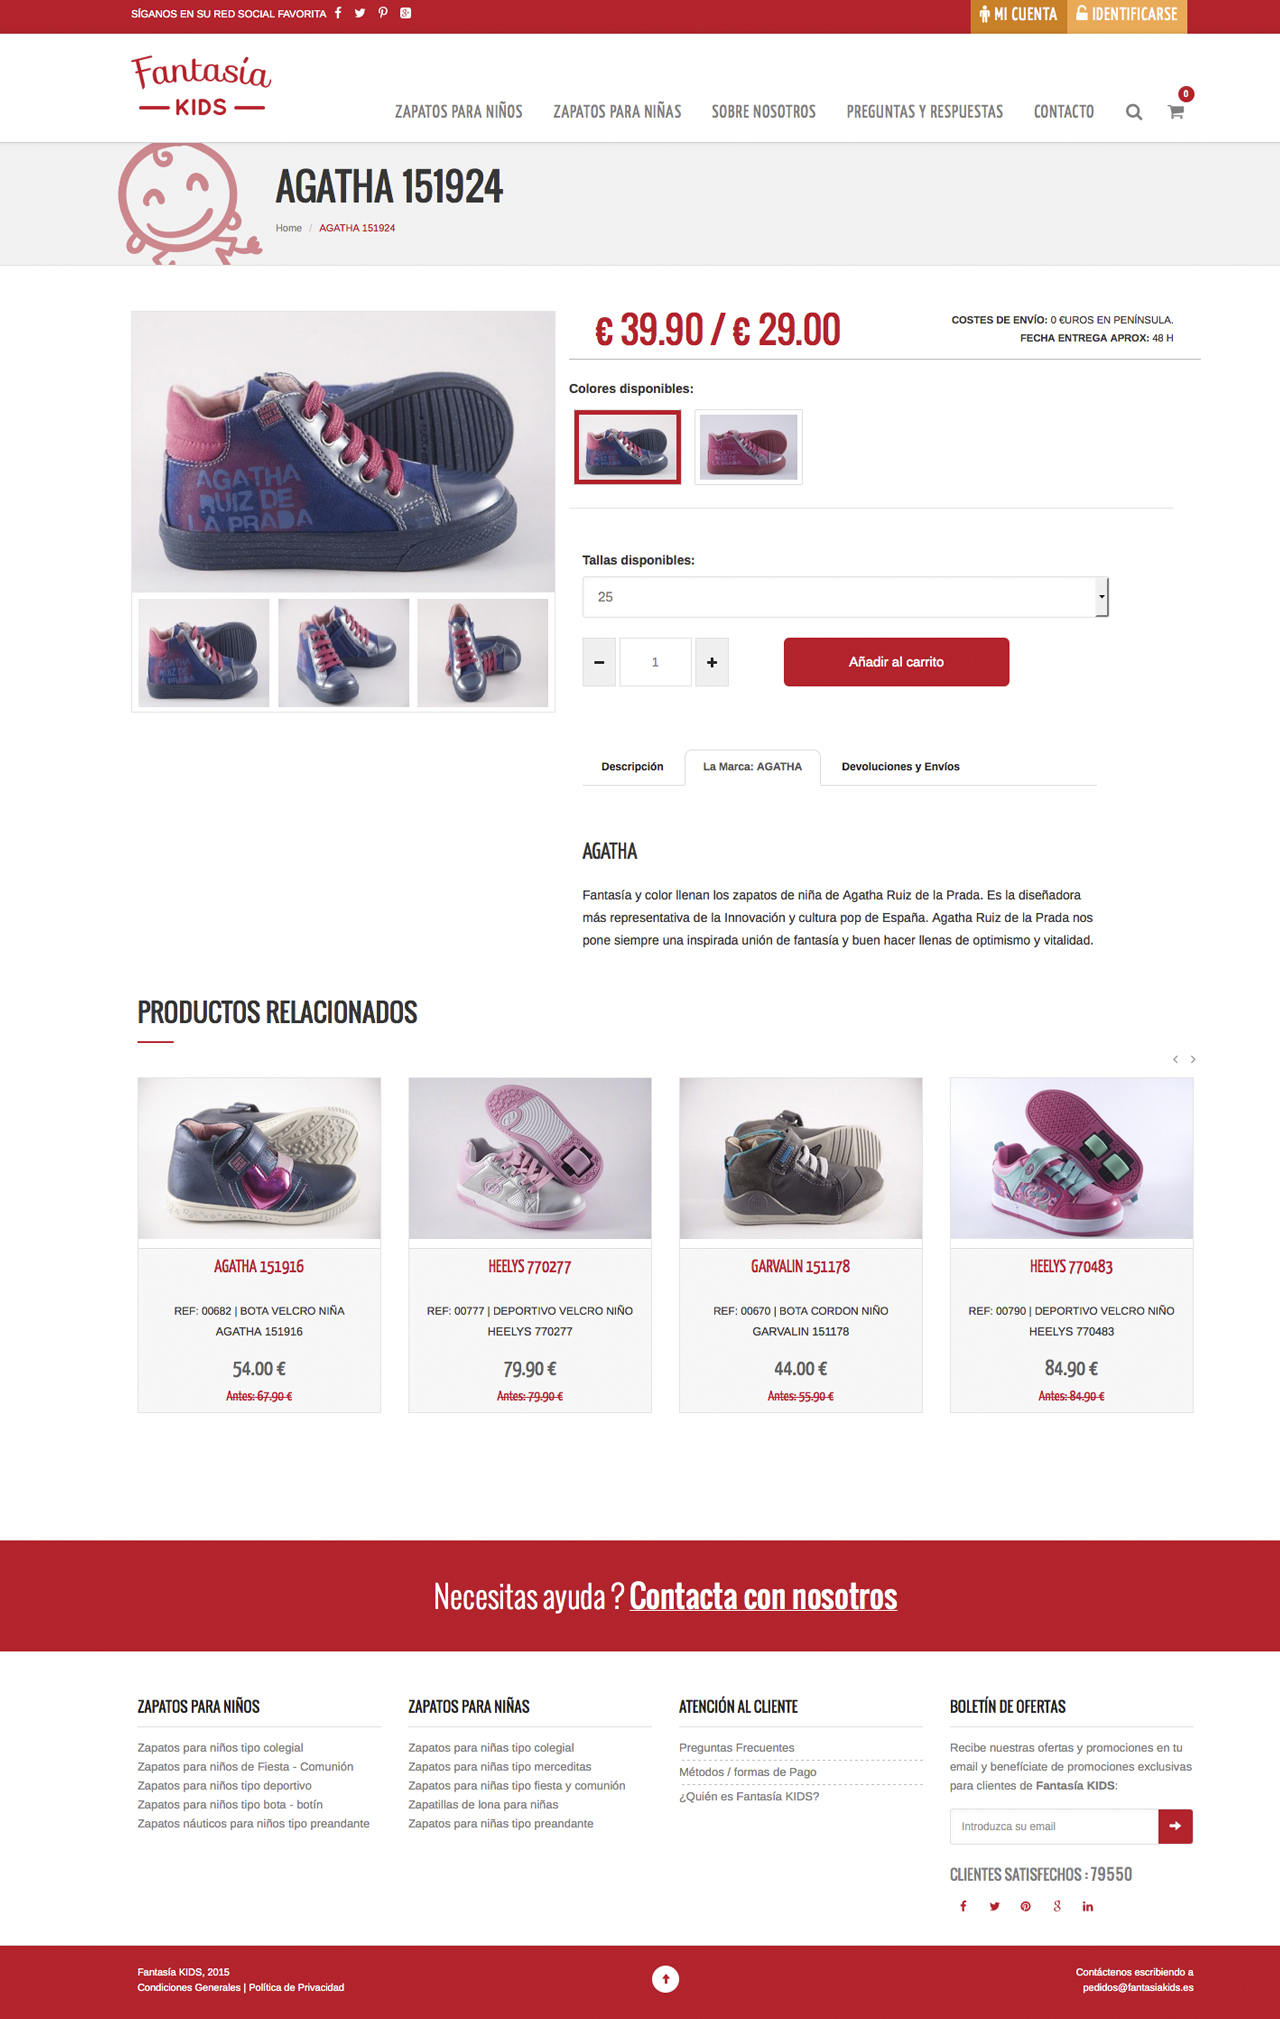 Web design and development for Fantasía Kids